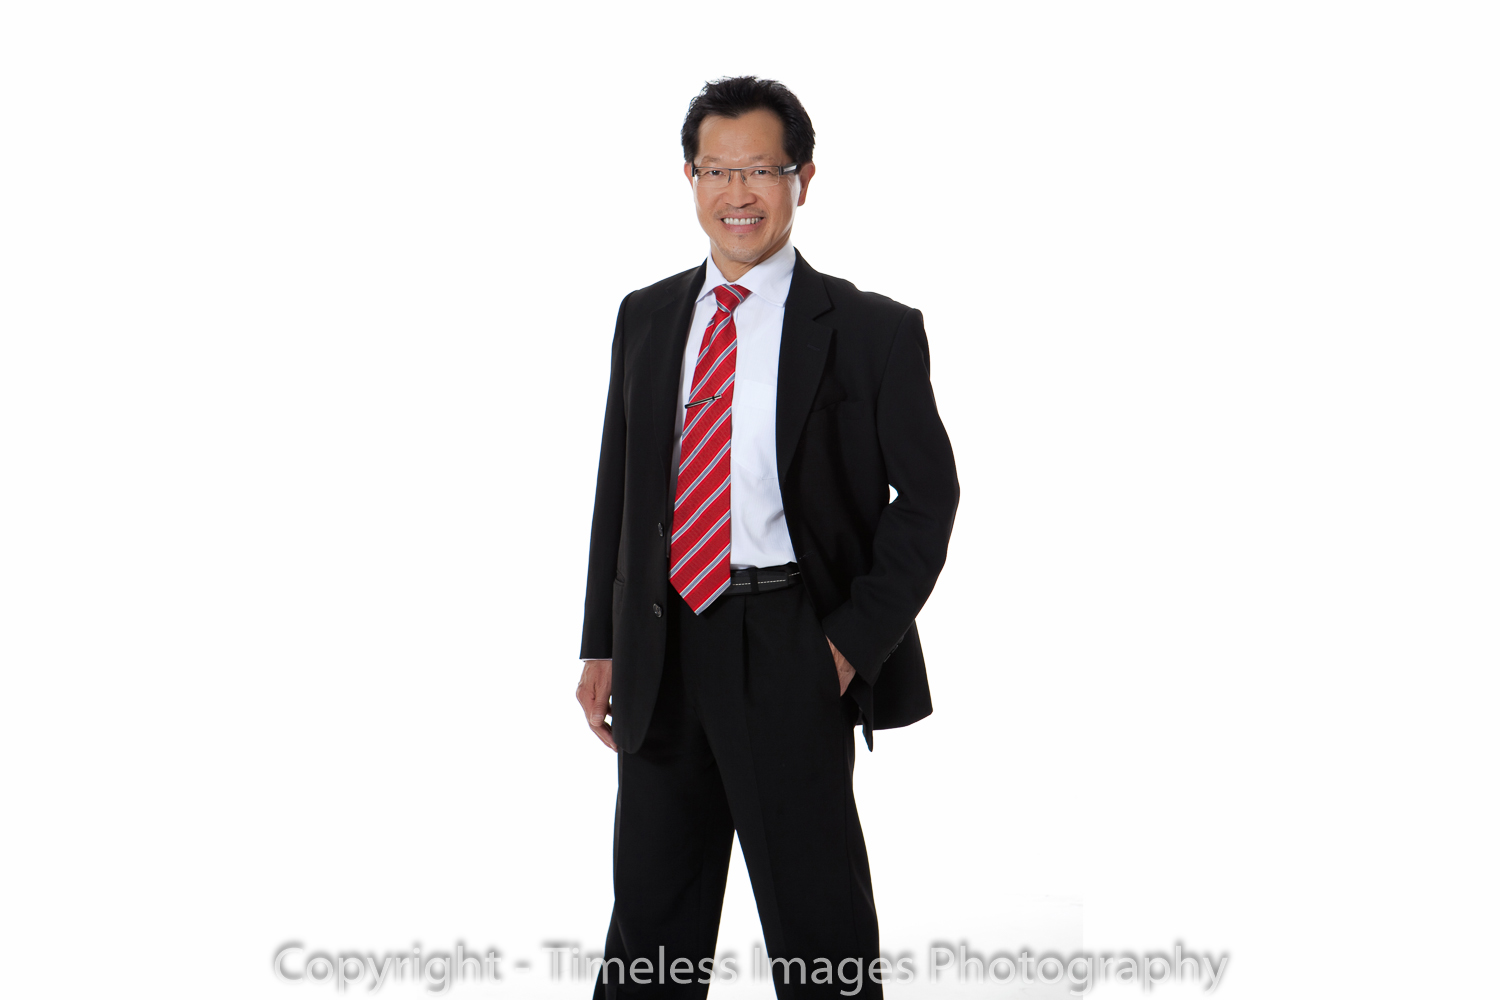 Business-Card-Shots-Corporate-Portfolios 02.jpg